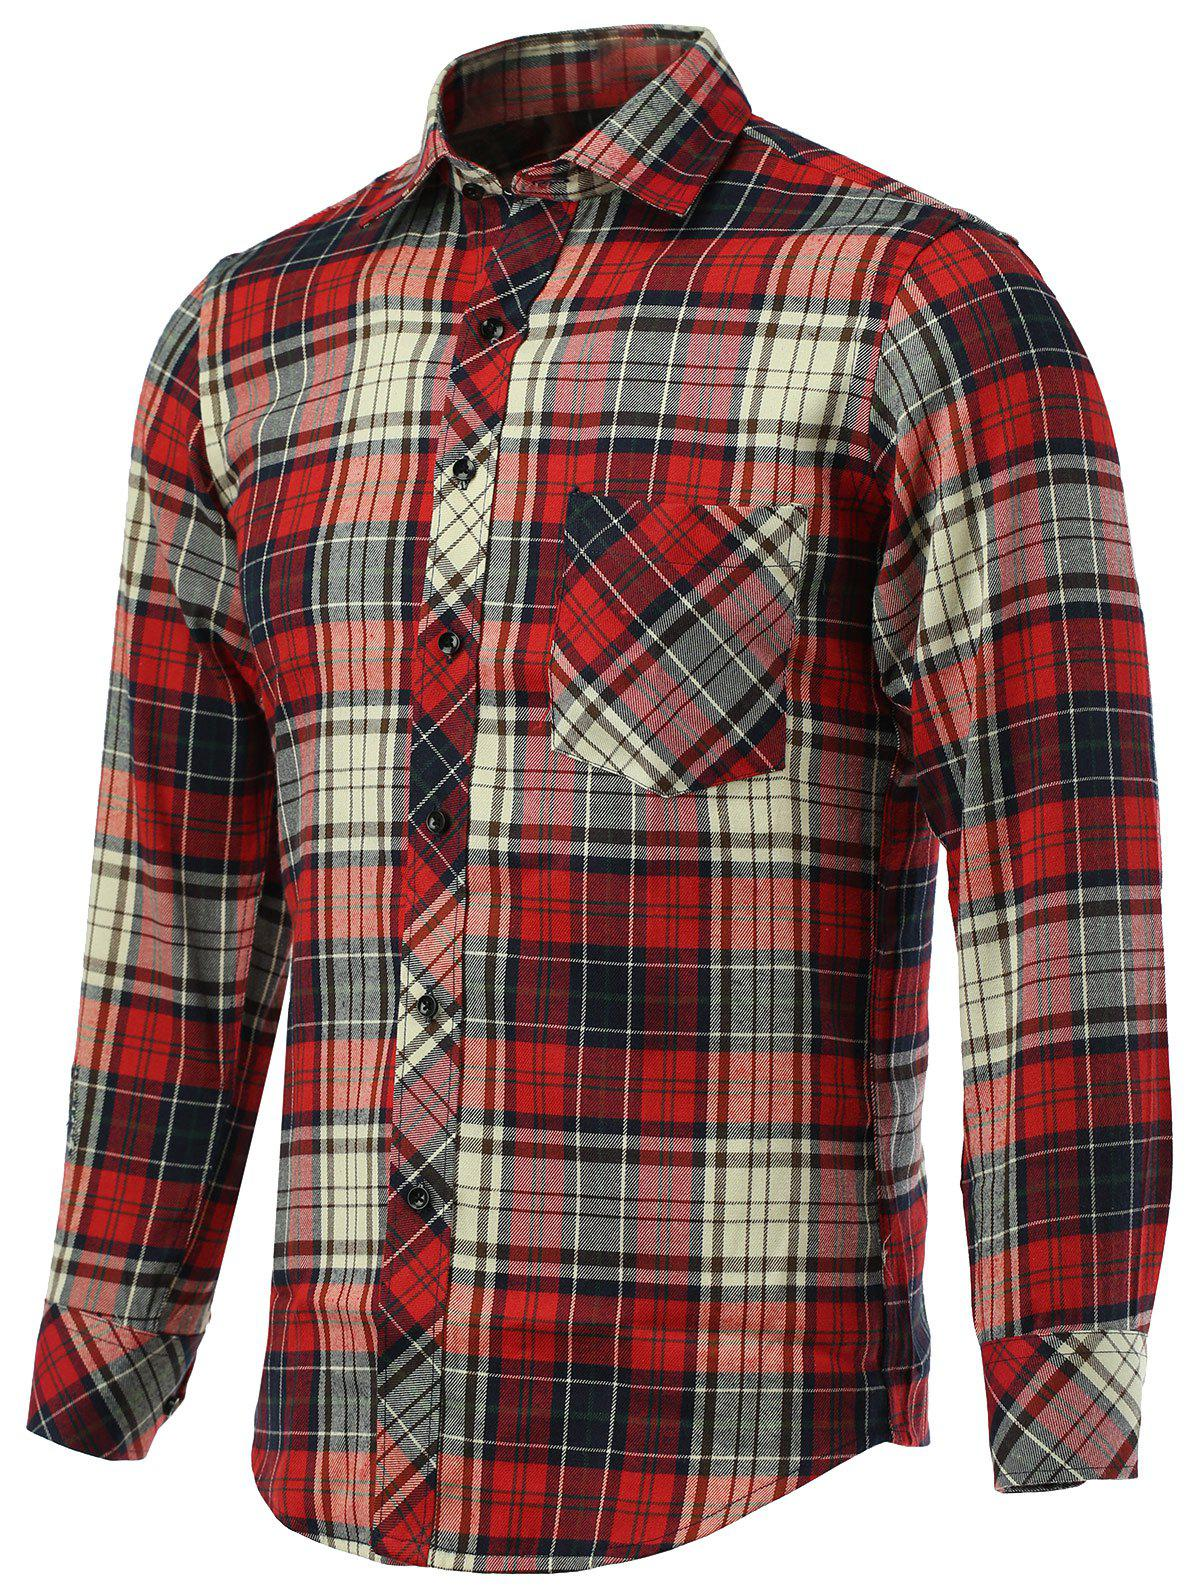 Tartan Pockets Design Turn-Down Collar Long Sleeve Shirt - RED 5XL